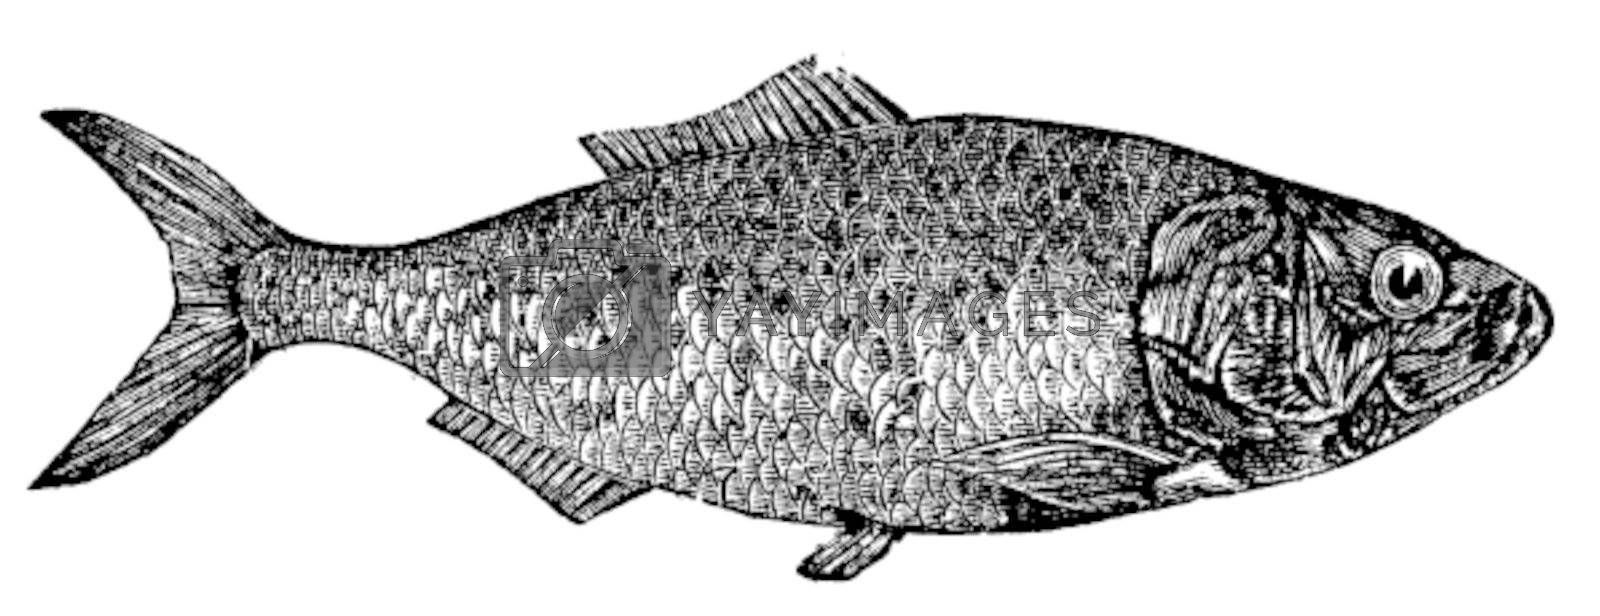 Shad, river herring  or Alosa menhaden vintage engraving.. Old engraved illustration of a shad fish, in vector, isolated against a white background.